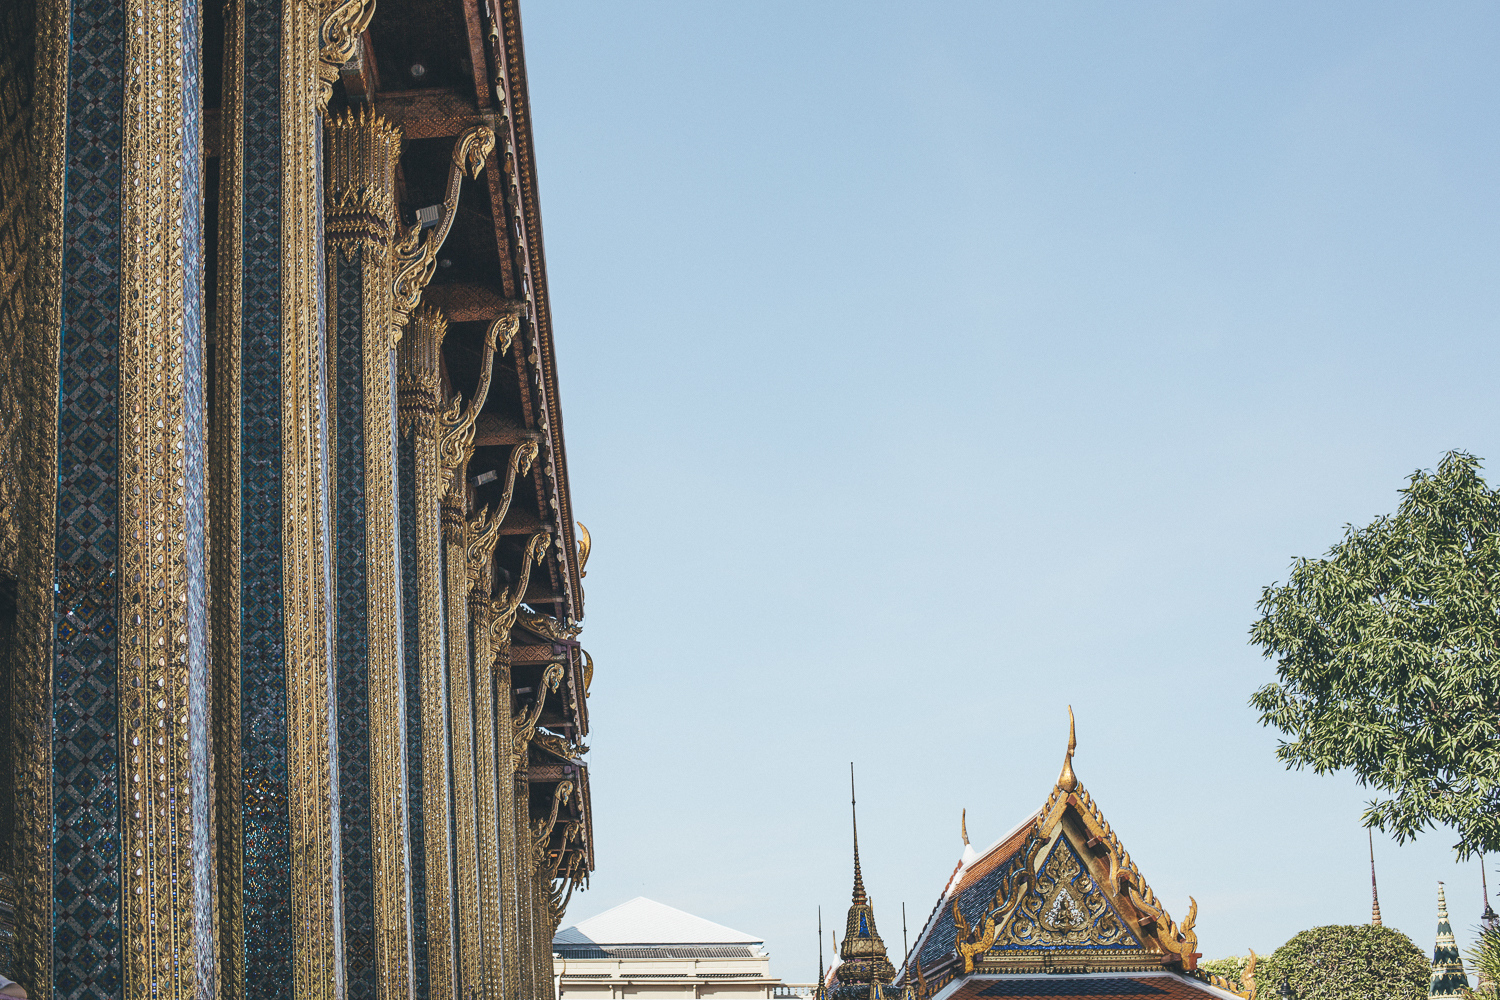 My Top 5 places to visit in Bangkok if you are into photography